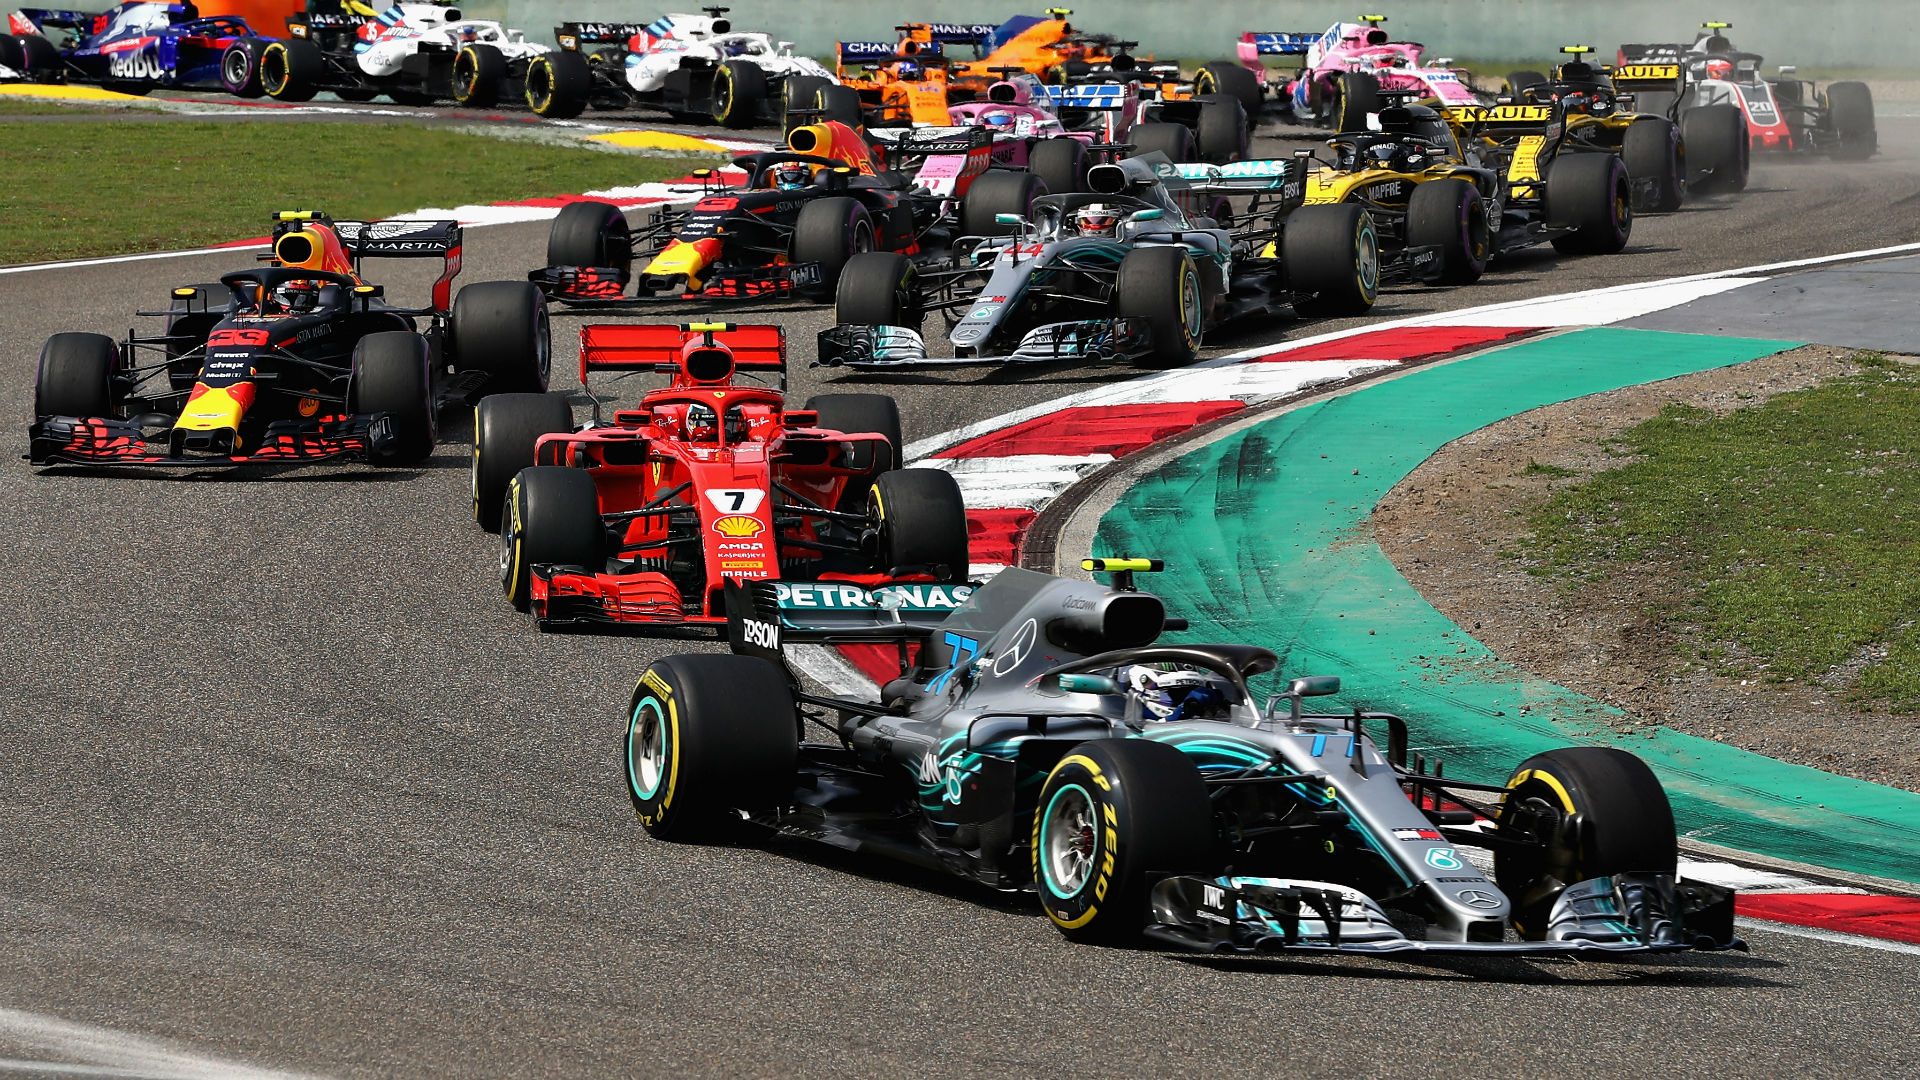 F1 Chinese Grand Prix: Start time, TV channel, live stream for 2019 race